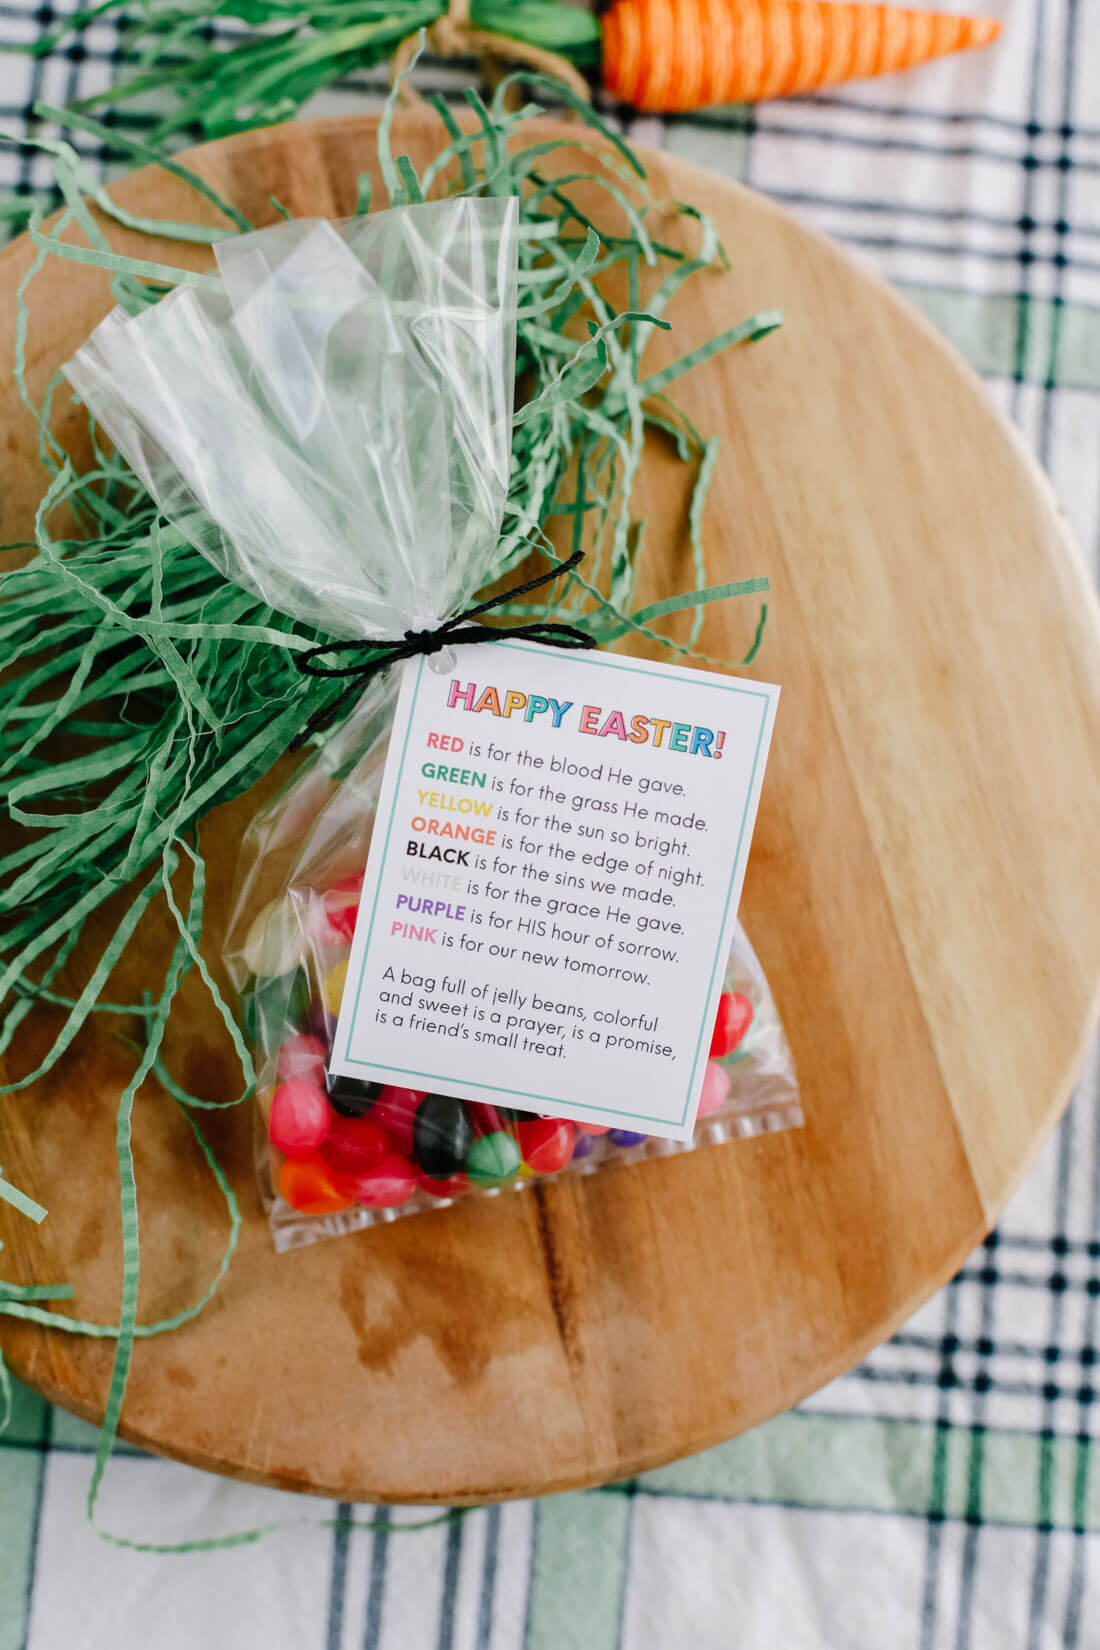 Easter treat jelly bean poem - wrapped in cellophane bag